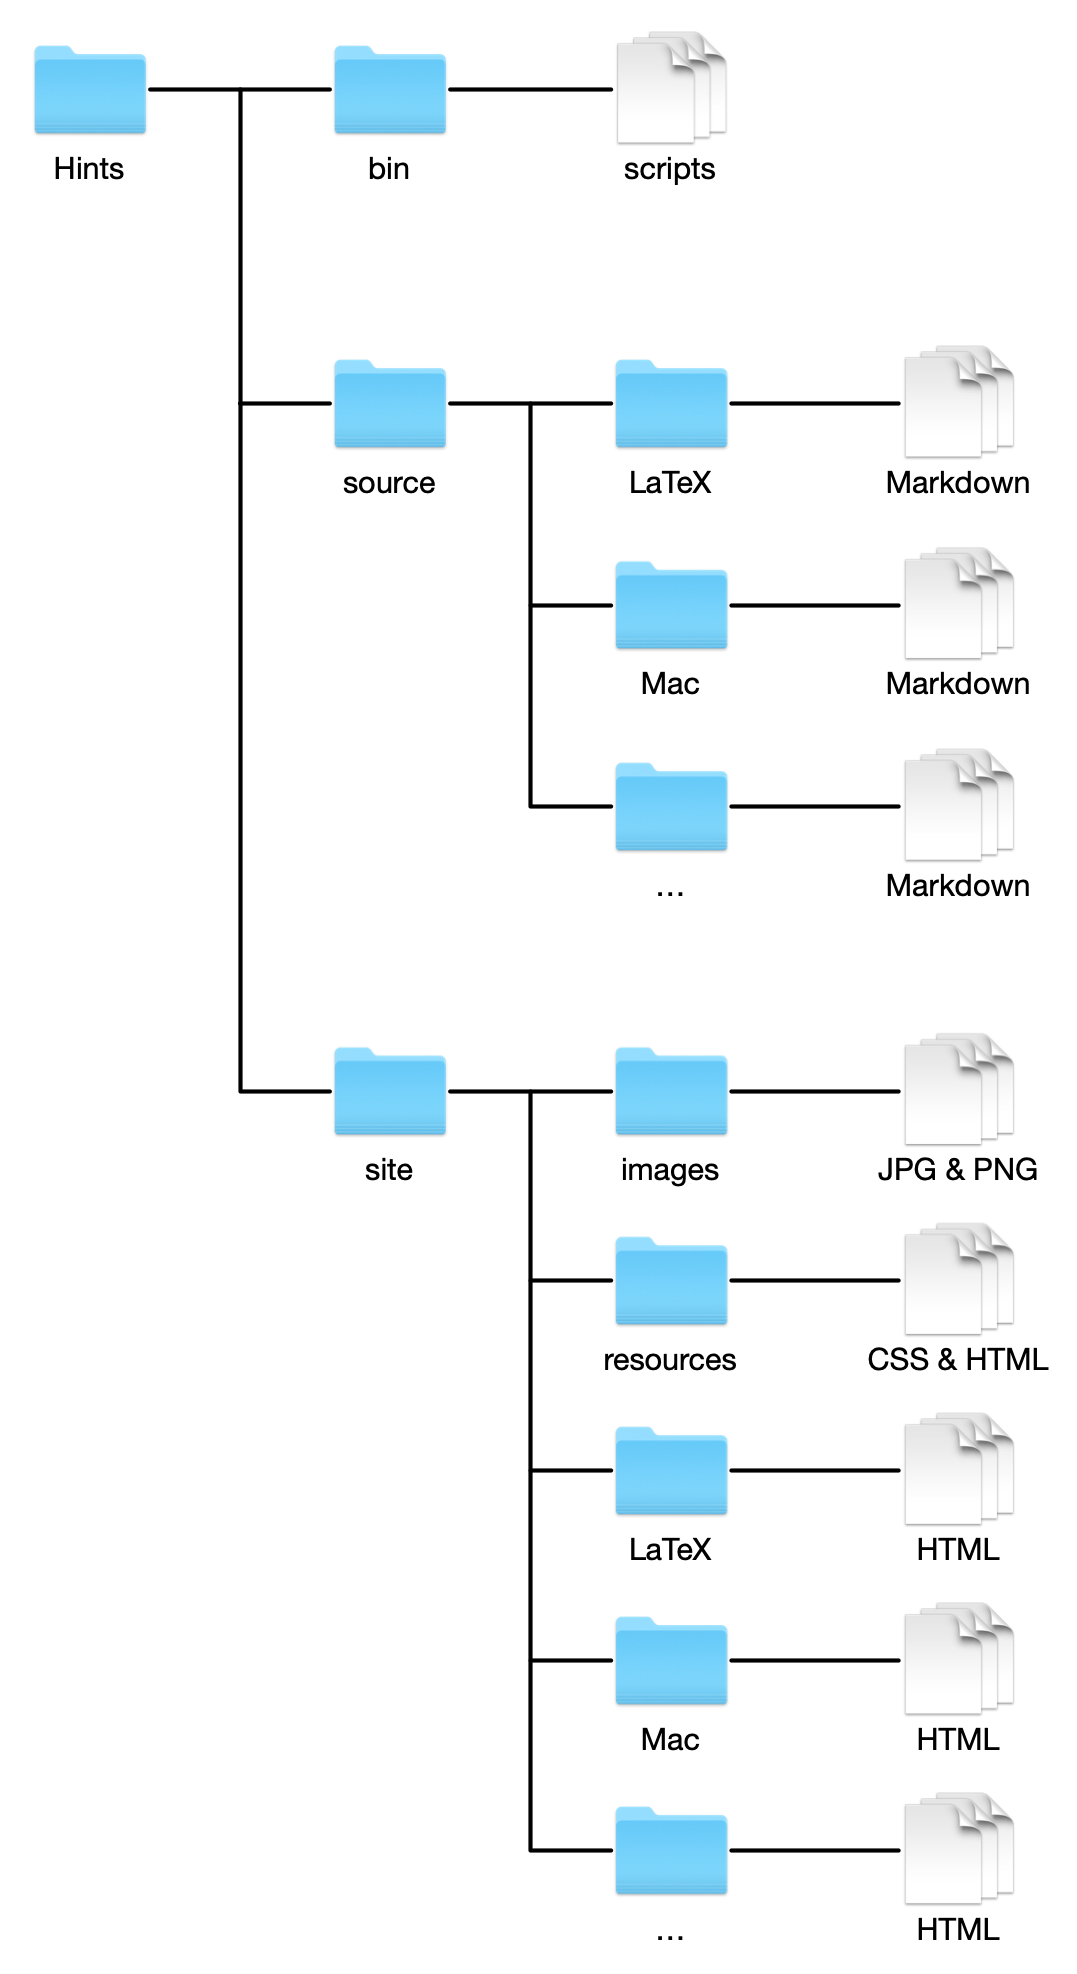 Hints directory structure